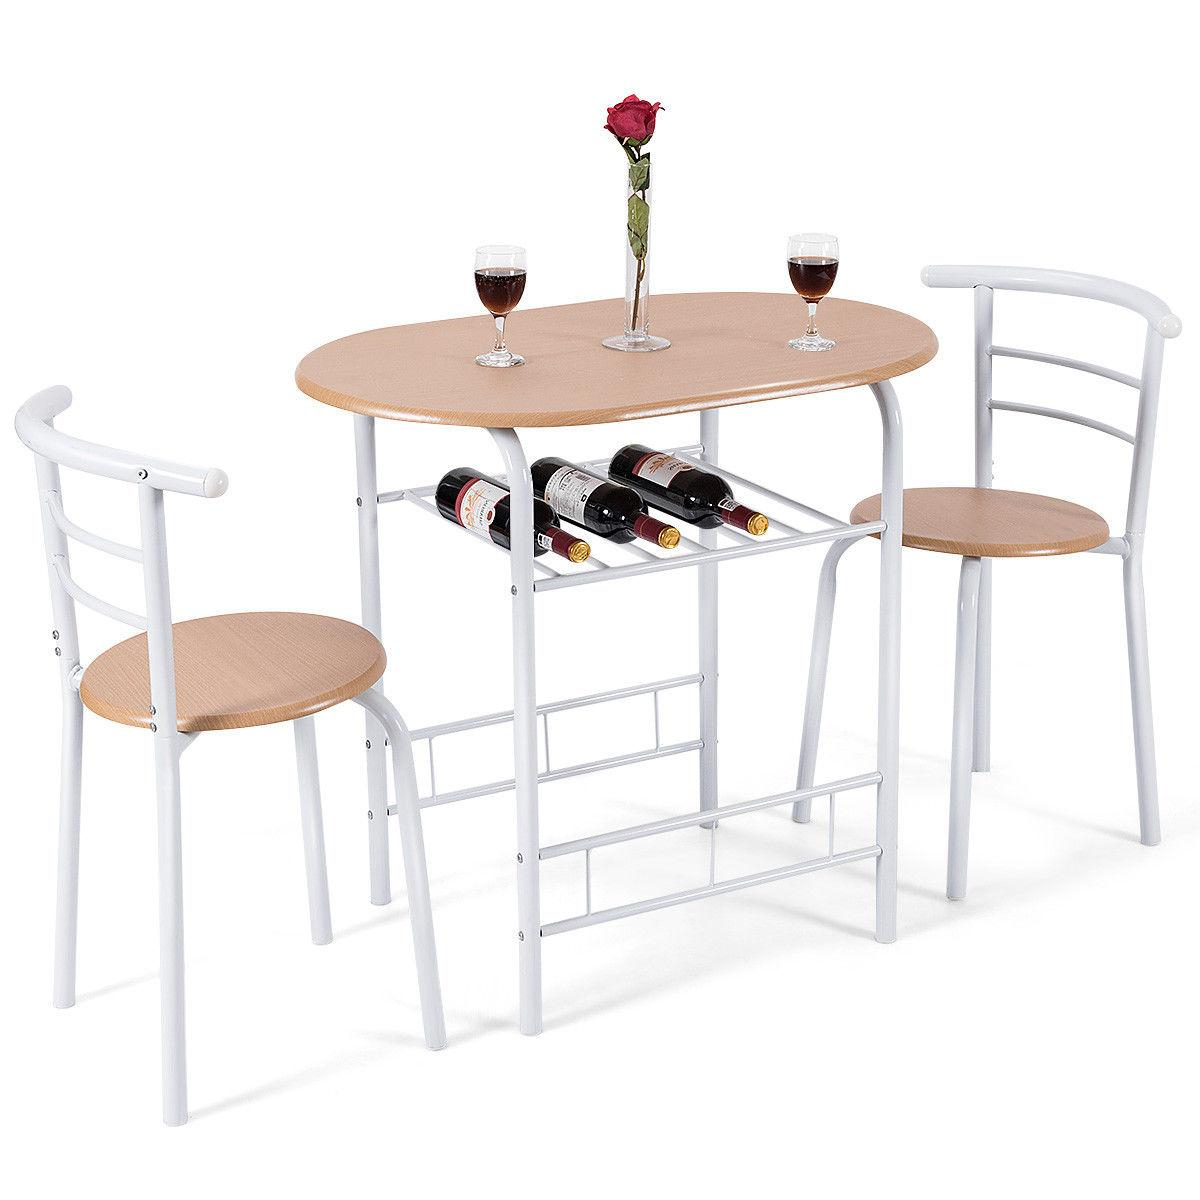 3 Piece Dining Set Table 2 Chairs Bistro With Best And Newest Ligon 3 Piece Breakfast Nook Dining Sets (Photo 18 of 20)